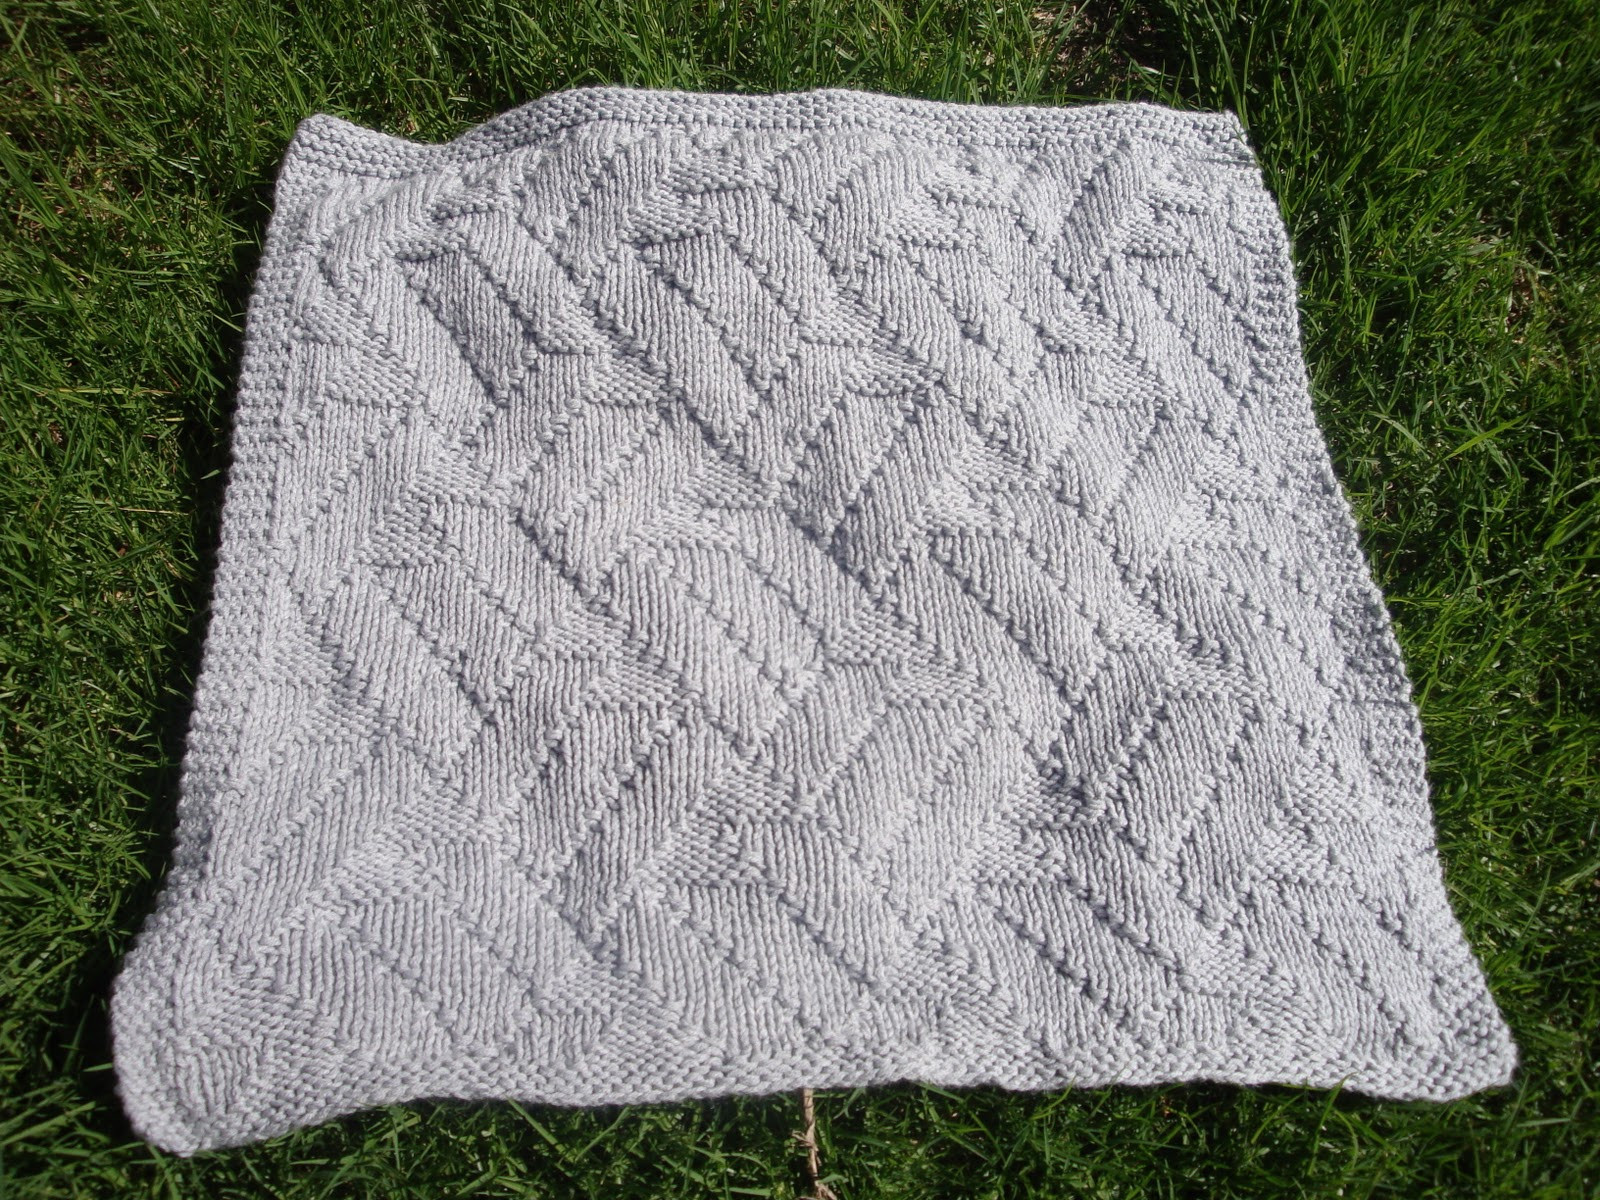 Baby Boy Knitted Blanket Awesome Life as We Know It Kai S Knit Baby Blanket Pattern Of Incredible 43 Photos Baby Boy Knitted Blanket